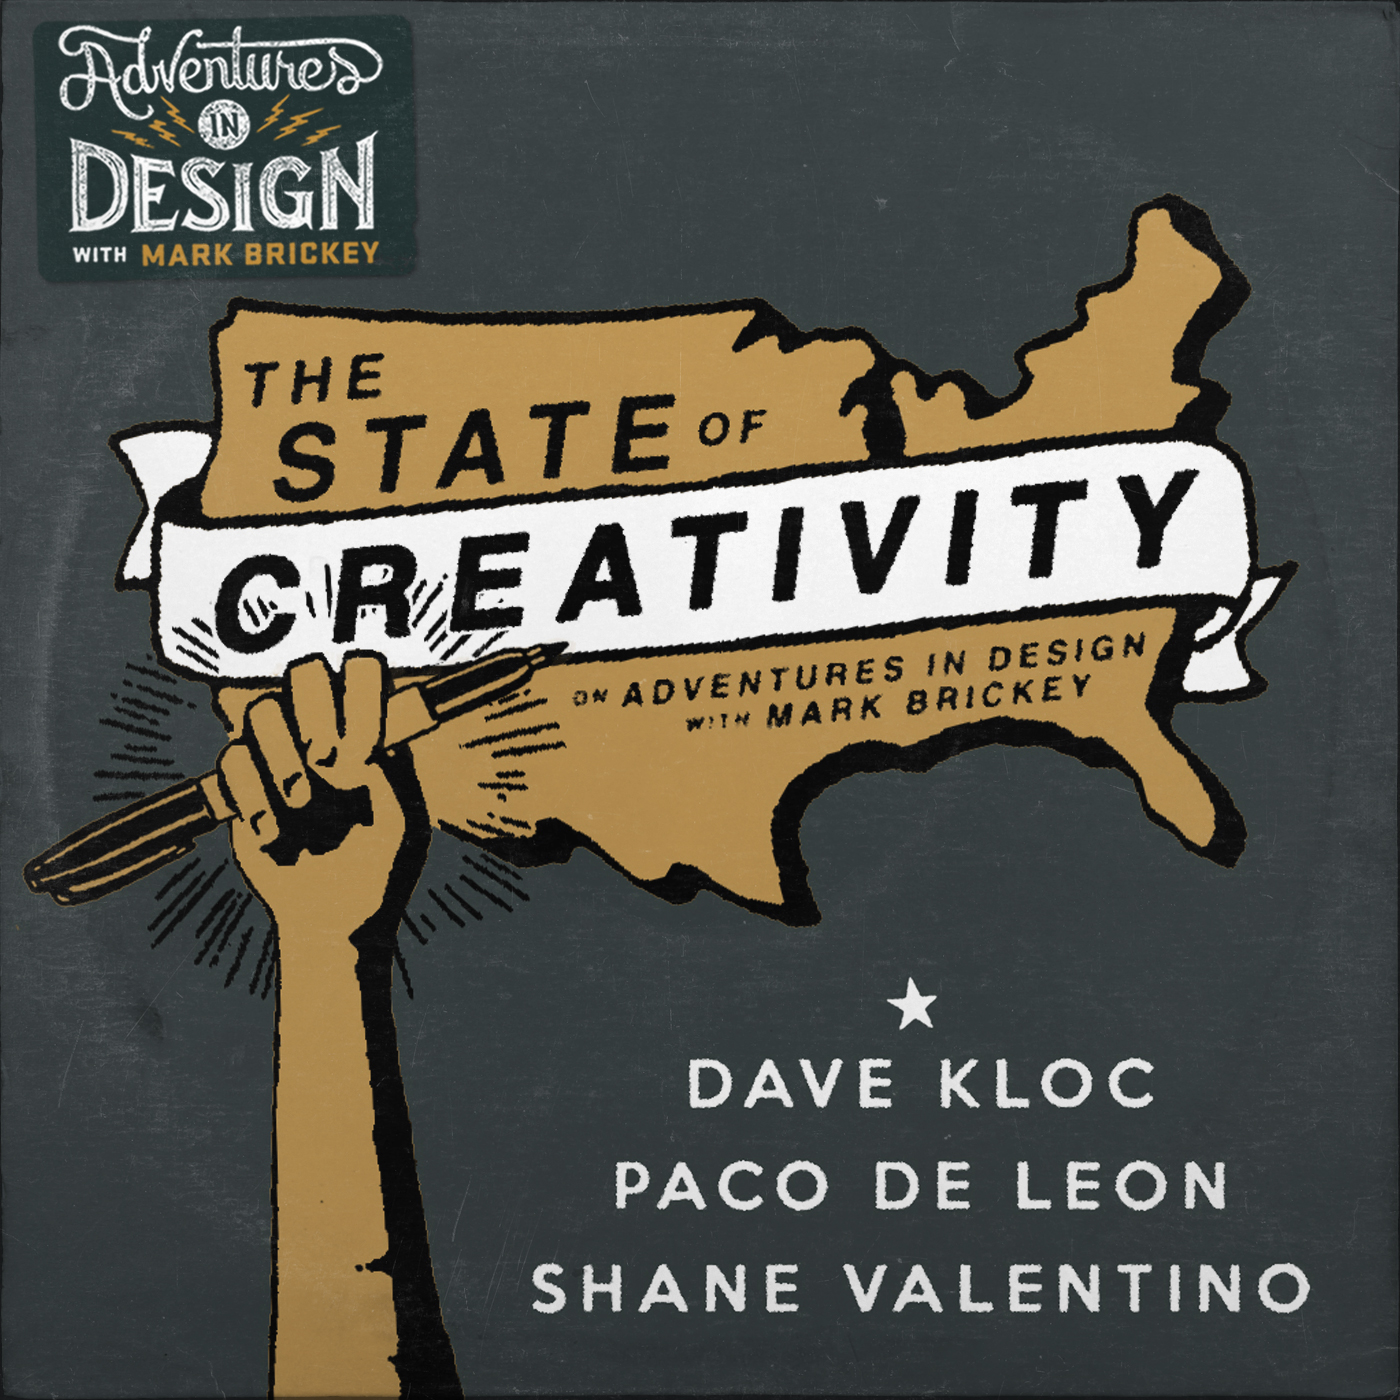 532 - The State Of Creativity with Shane Valentino, Paco De Leon, and Dave Kloc